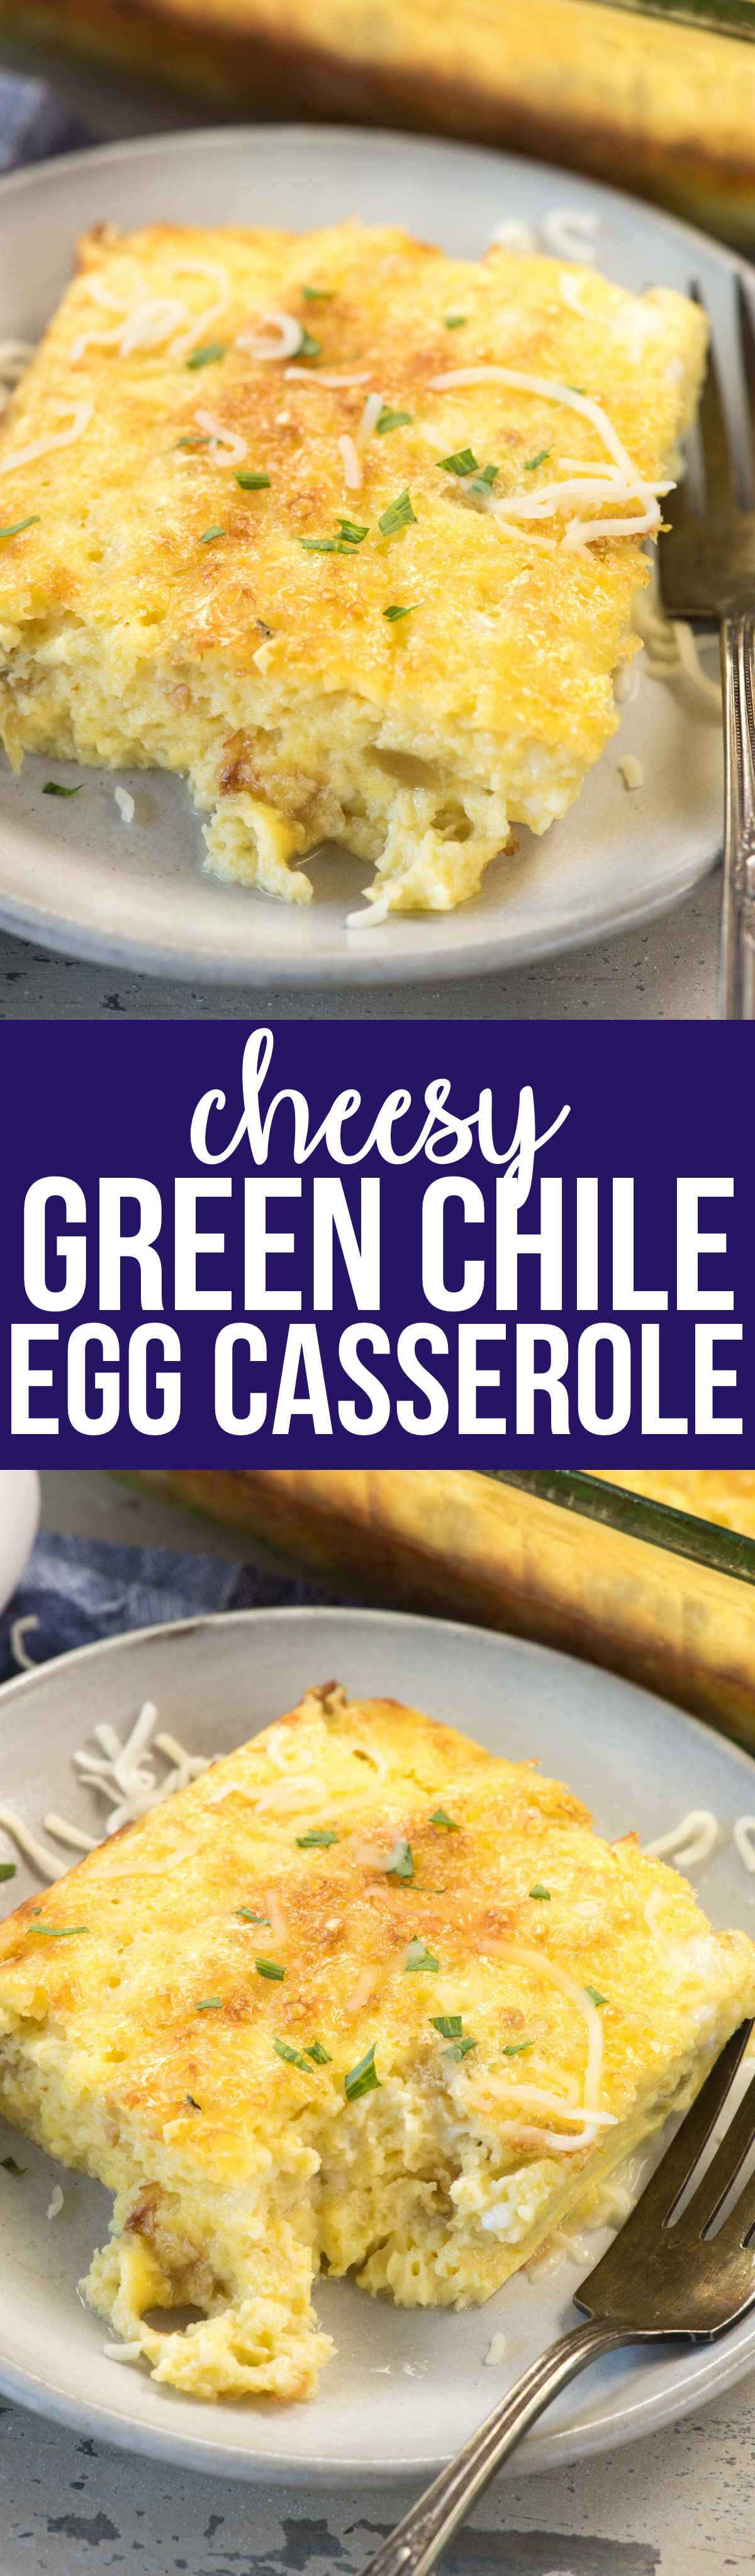 Cheesy Green Chile Egg Casserole is the perfect brunch recipe! It's got lots of cheese and some spice from green chiles; this recipe is a family favorite!